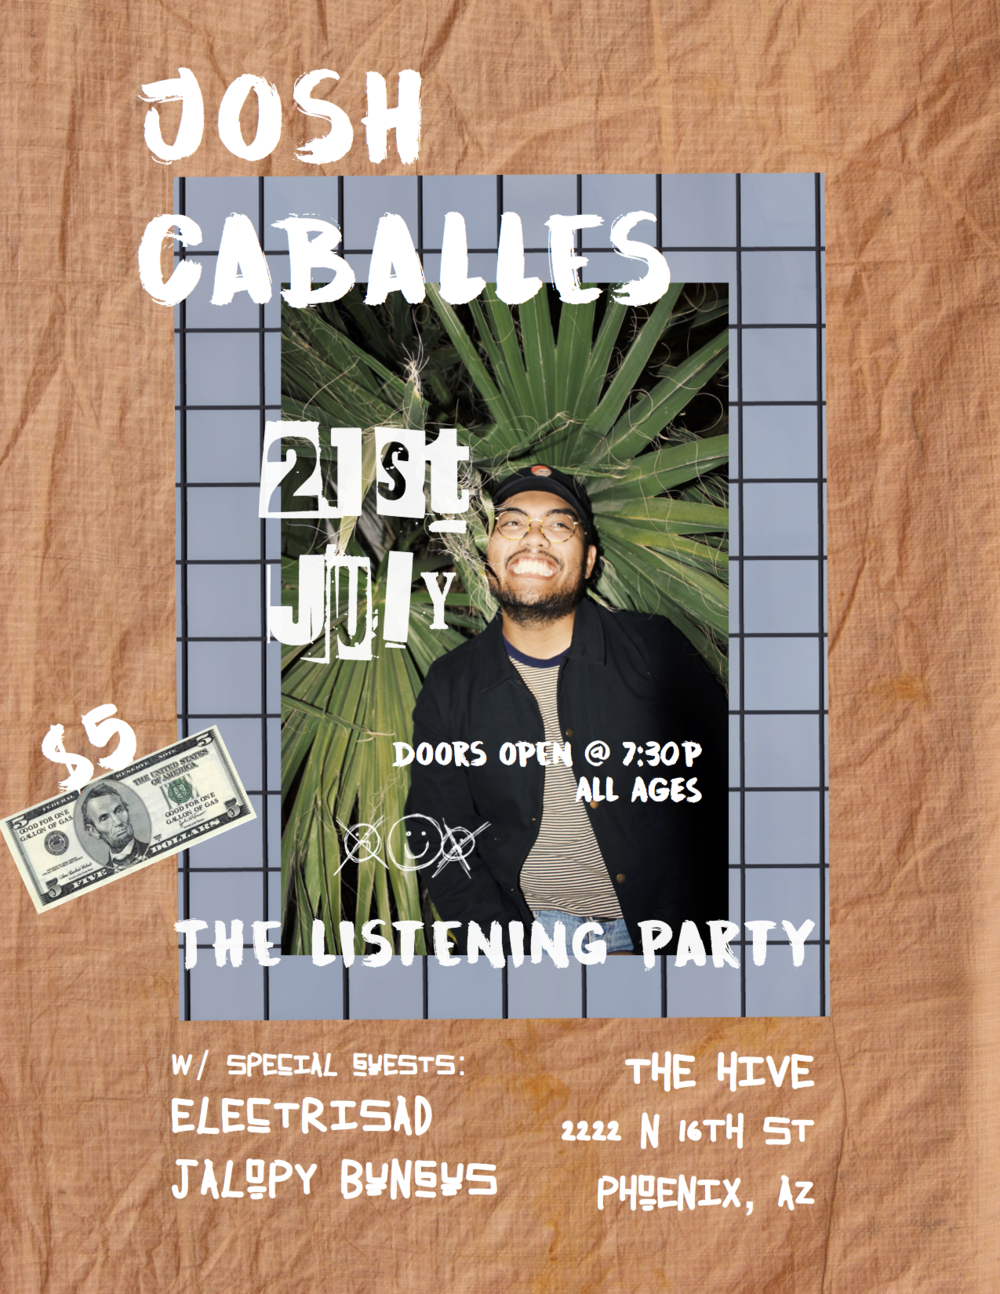 The Listening Party - 7.21.17 | 7:30PM | 222 N 16TH ST